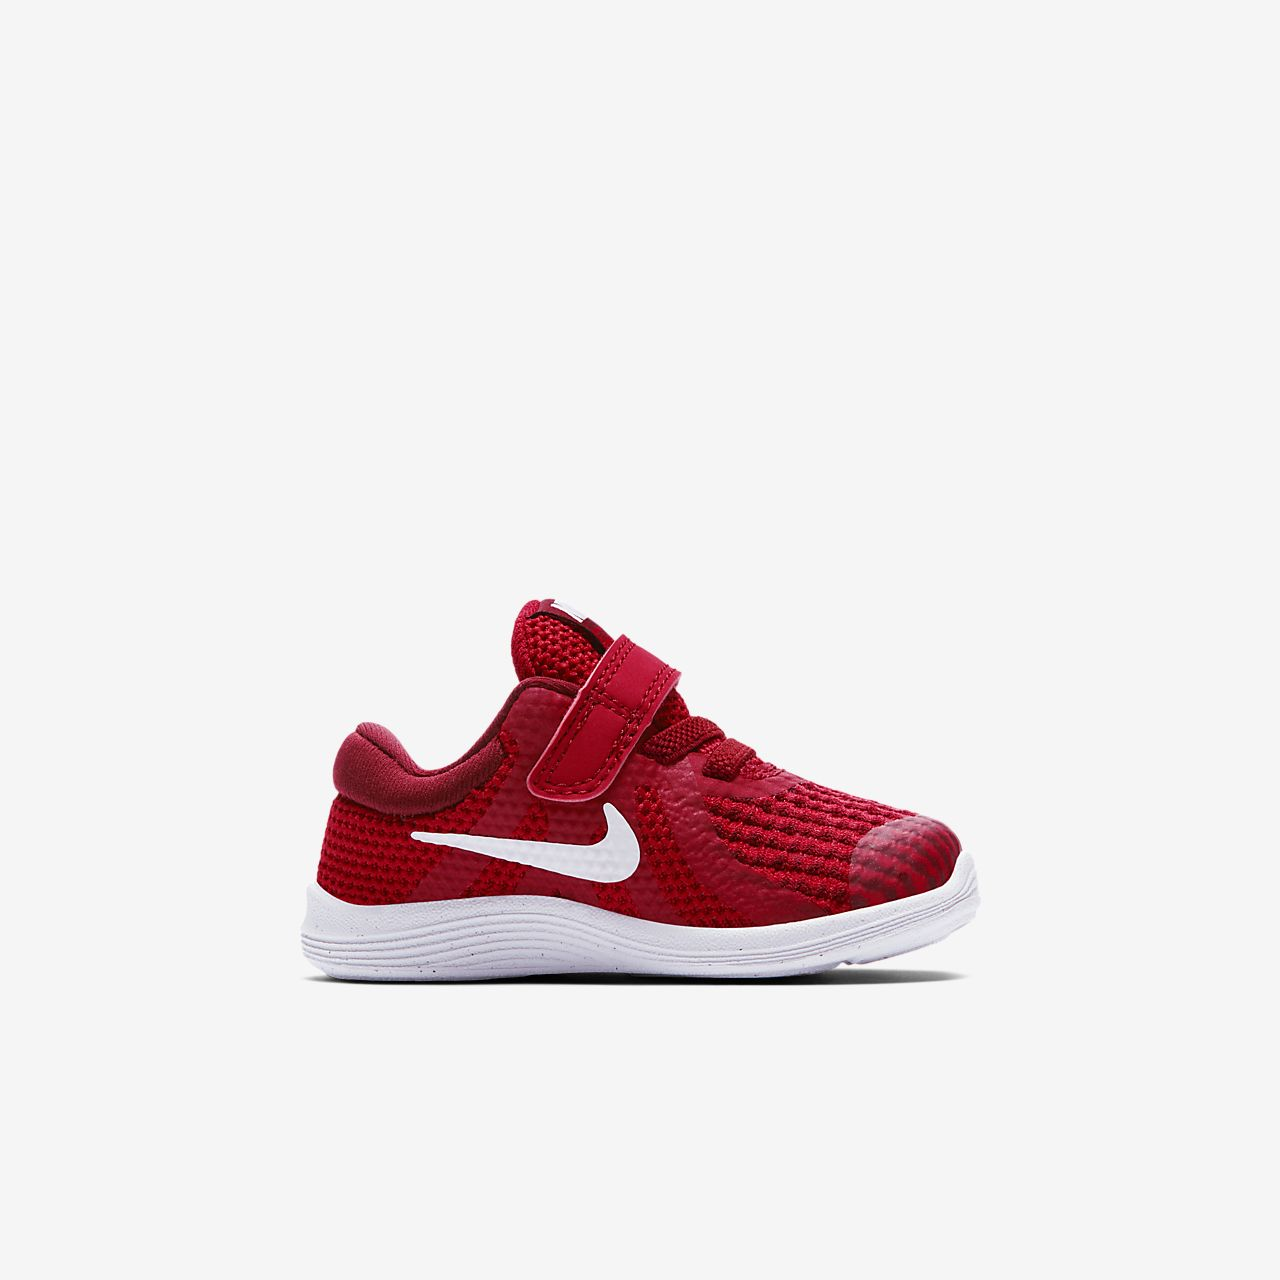 ... Nike Revolution 4 Infant/Toddler Shoe